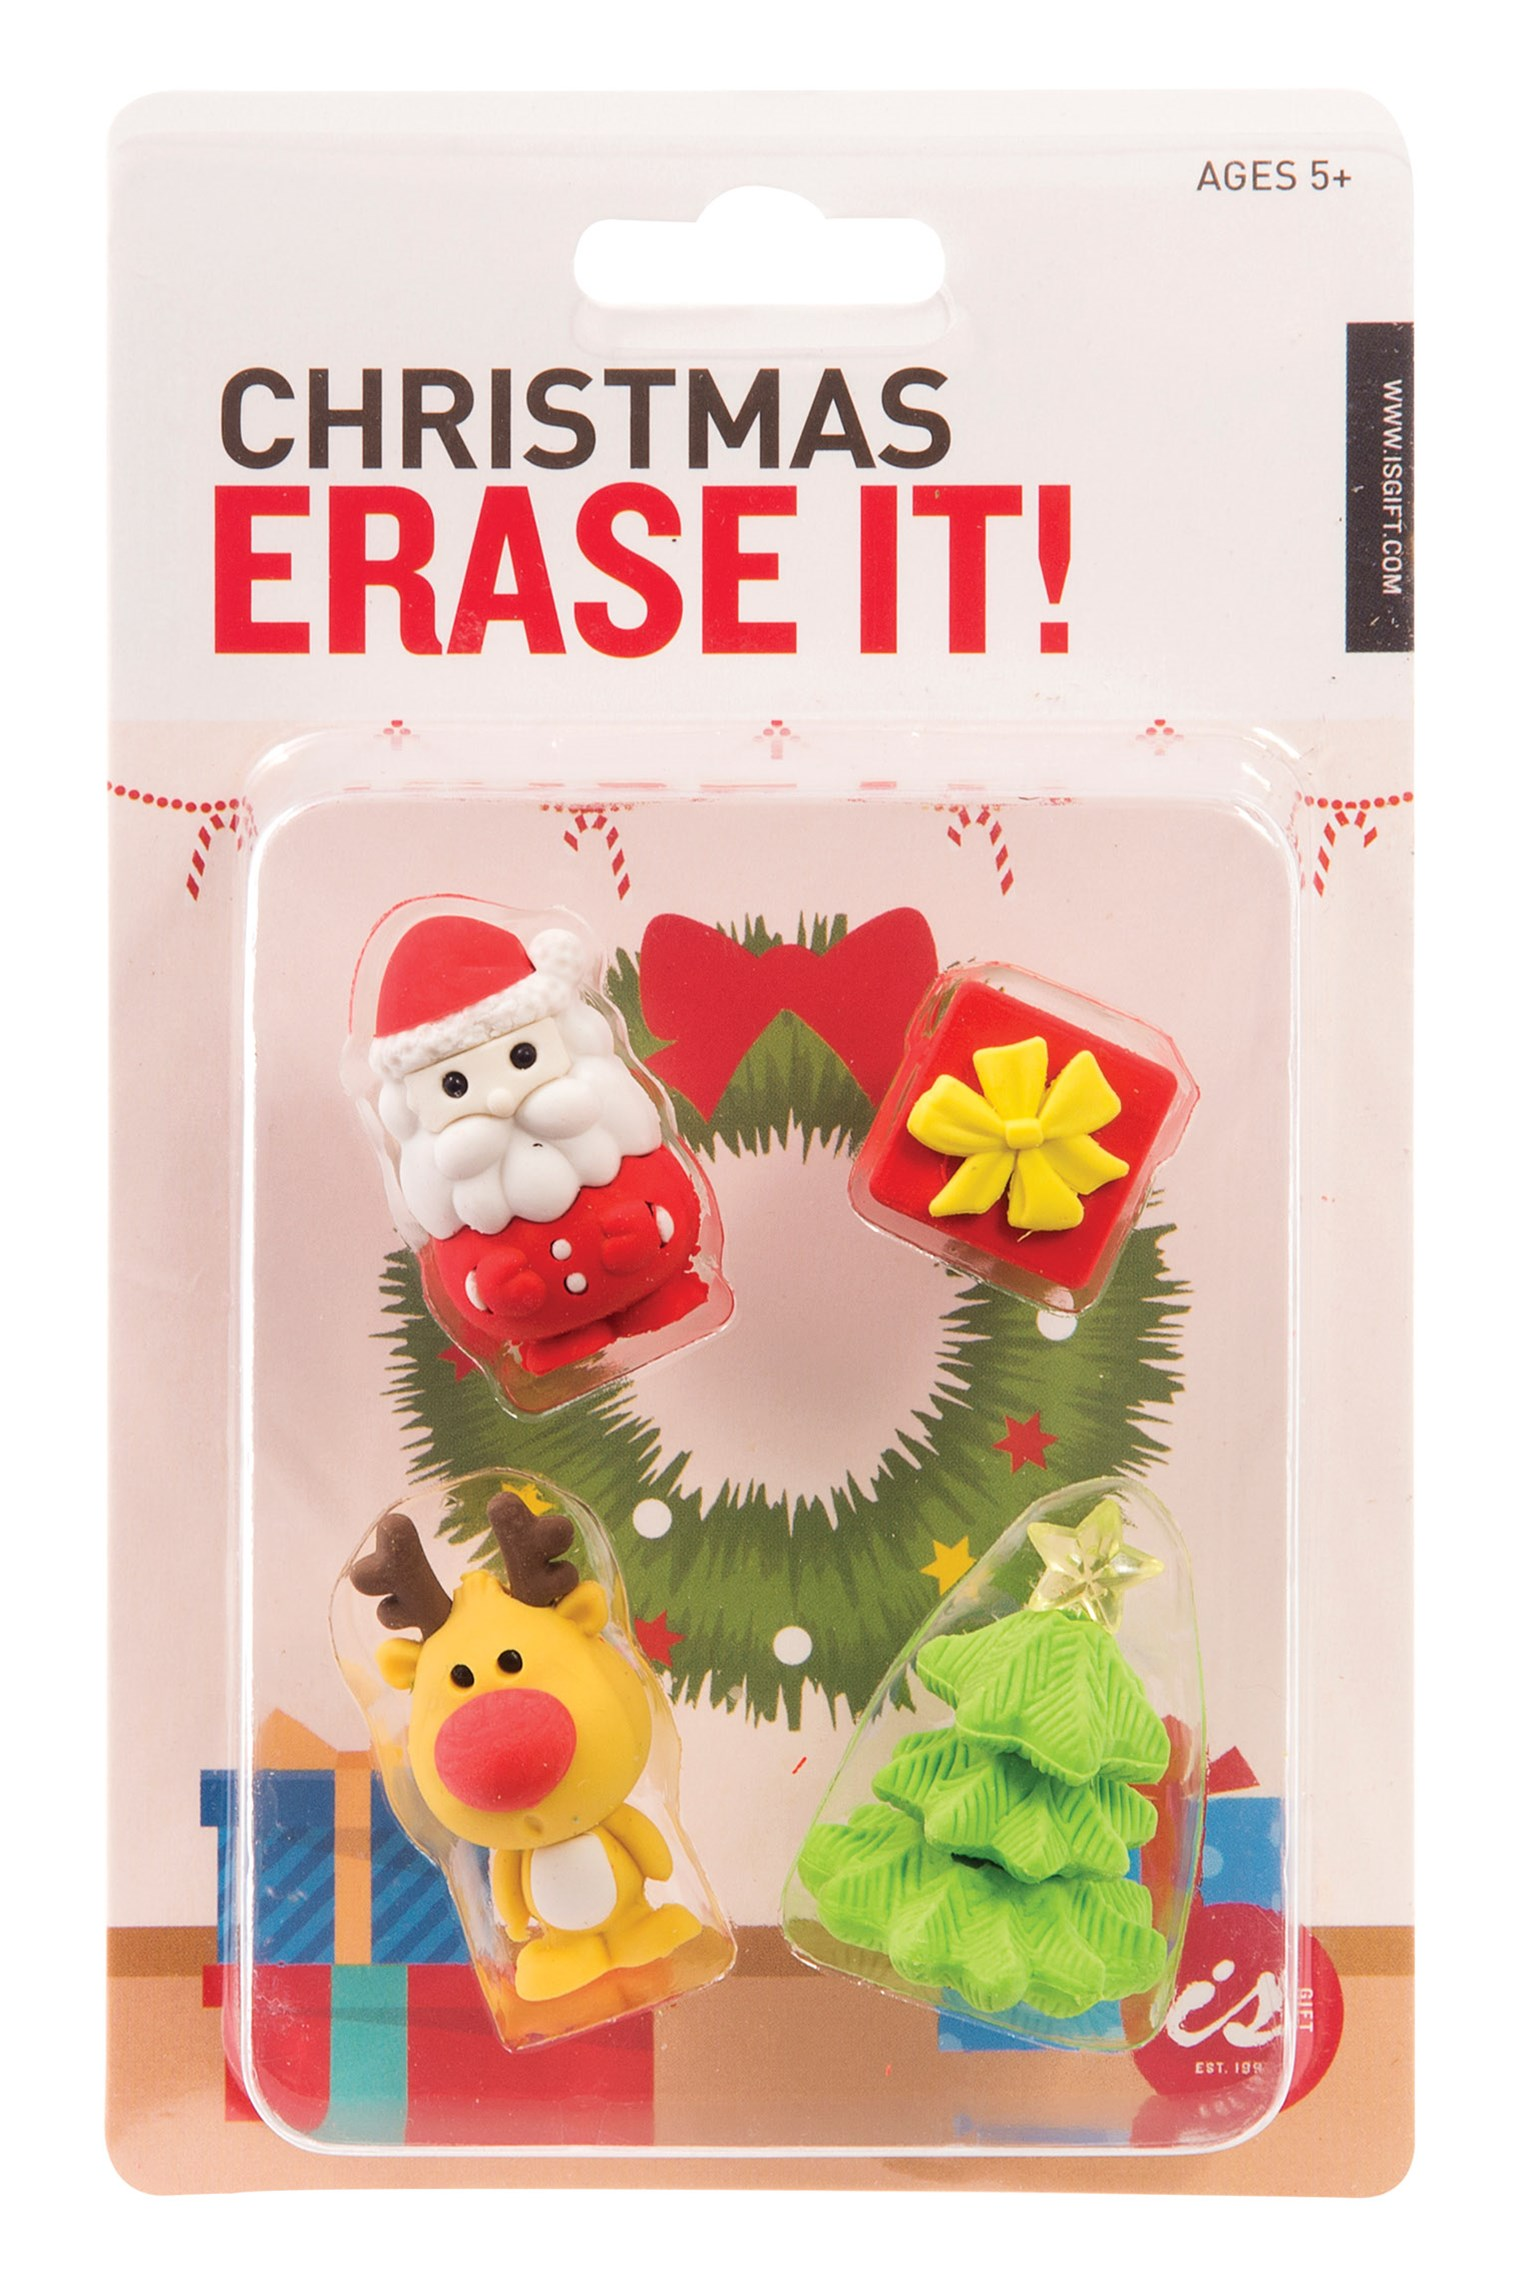 Christmas Erase It!